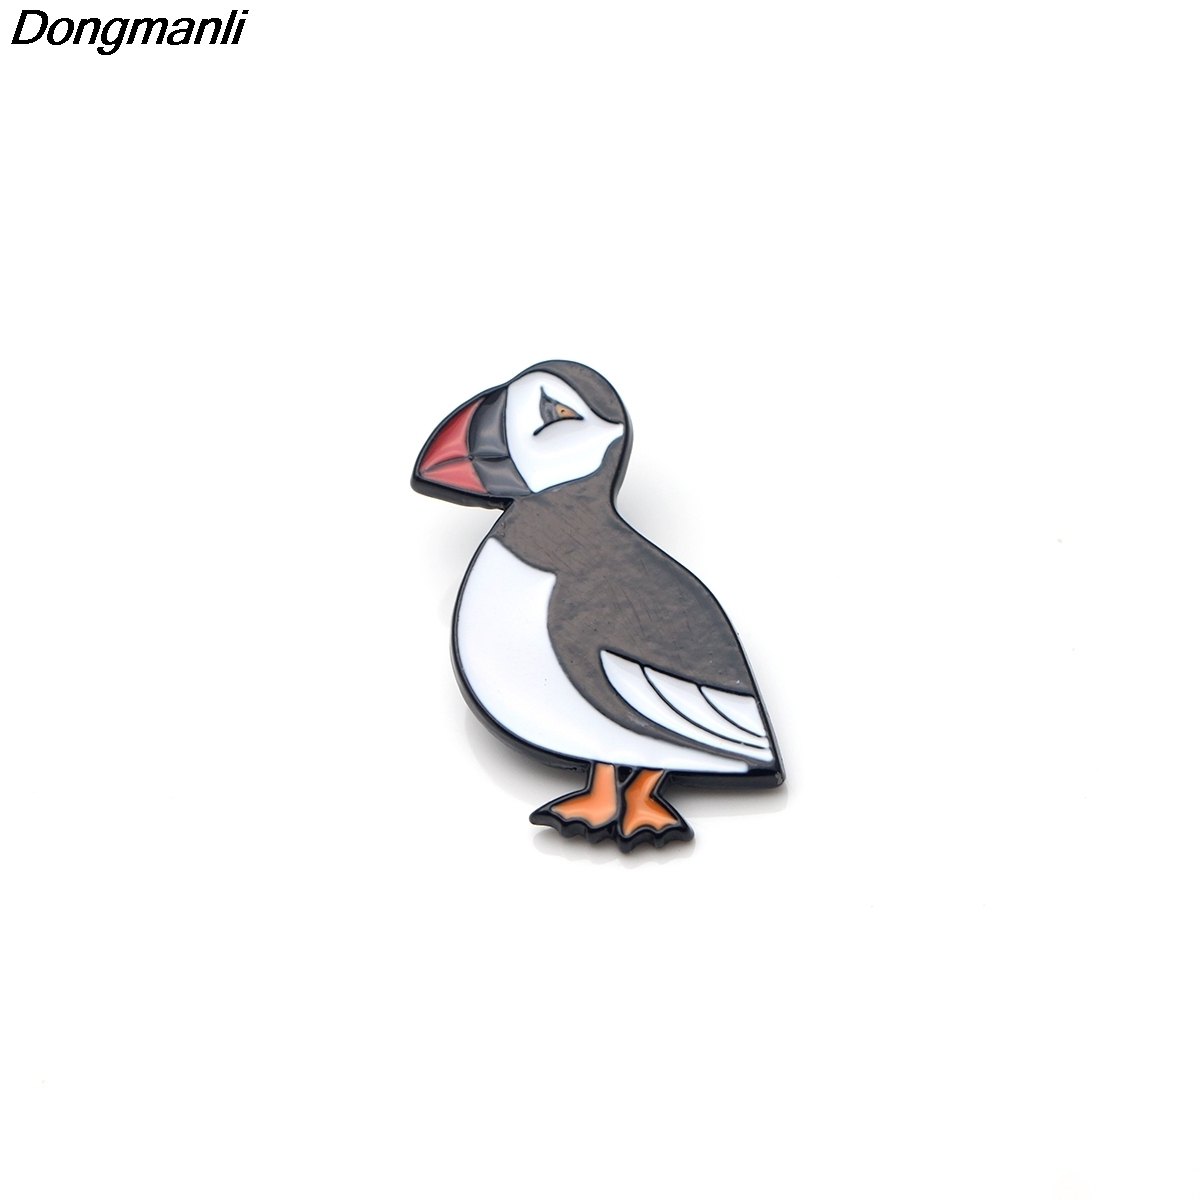 P2595 Dongmanli wholesale 20pcs lot Cute Puffin Sea bird Metal Enamel Pins and Brooches for Women